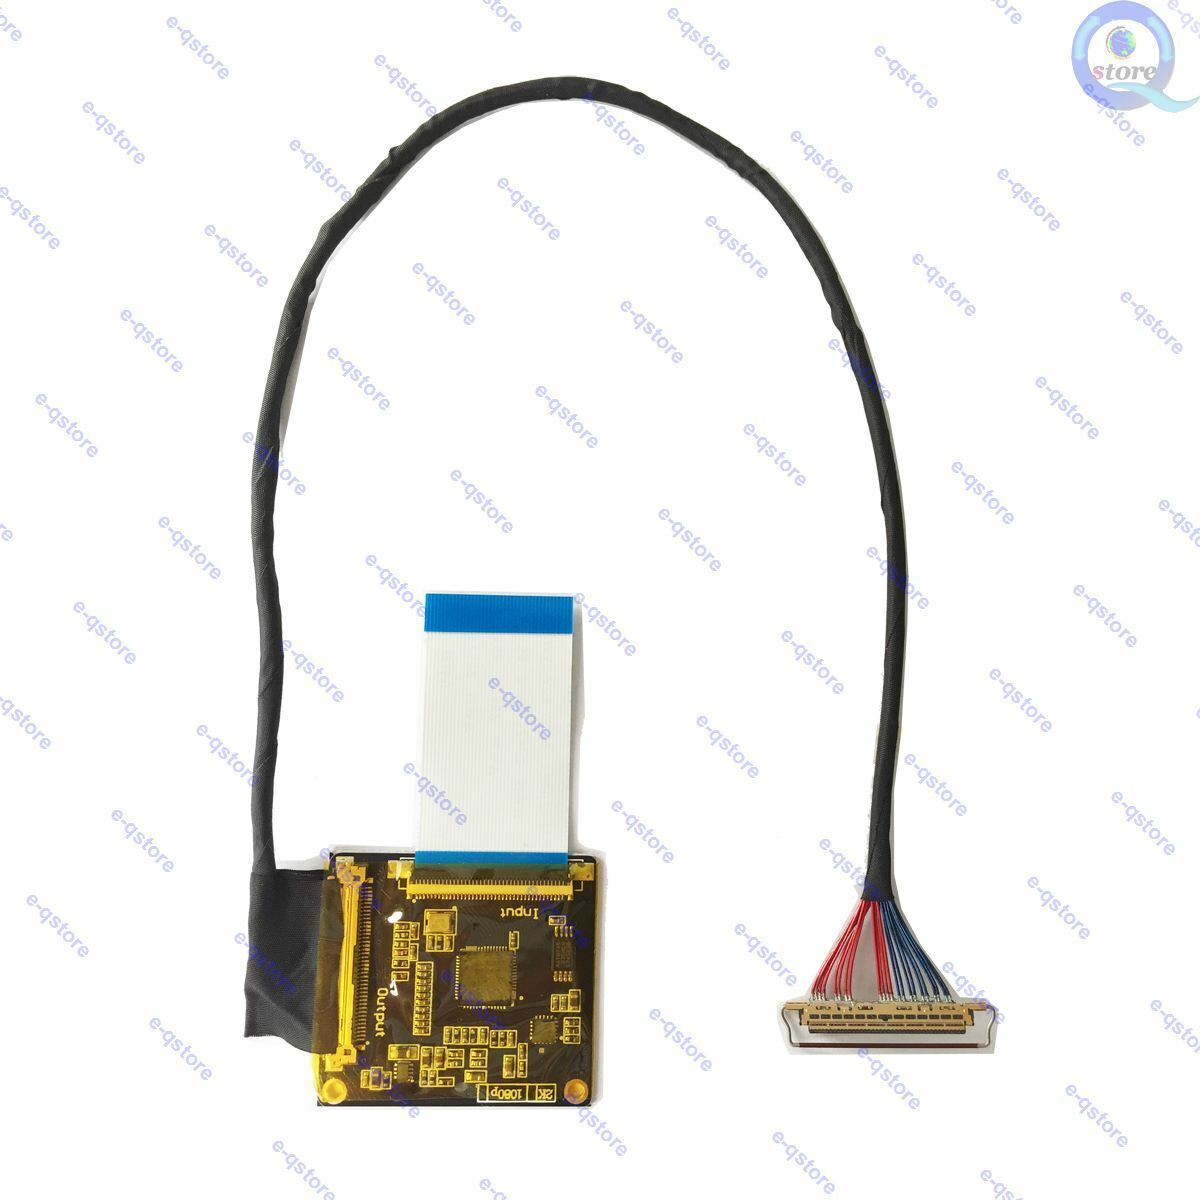 Details about WQHD 2560X1440 1440p upgrade Screen Kit LCD controller for  thinkpad T430S T420S